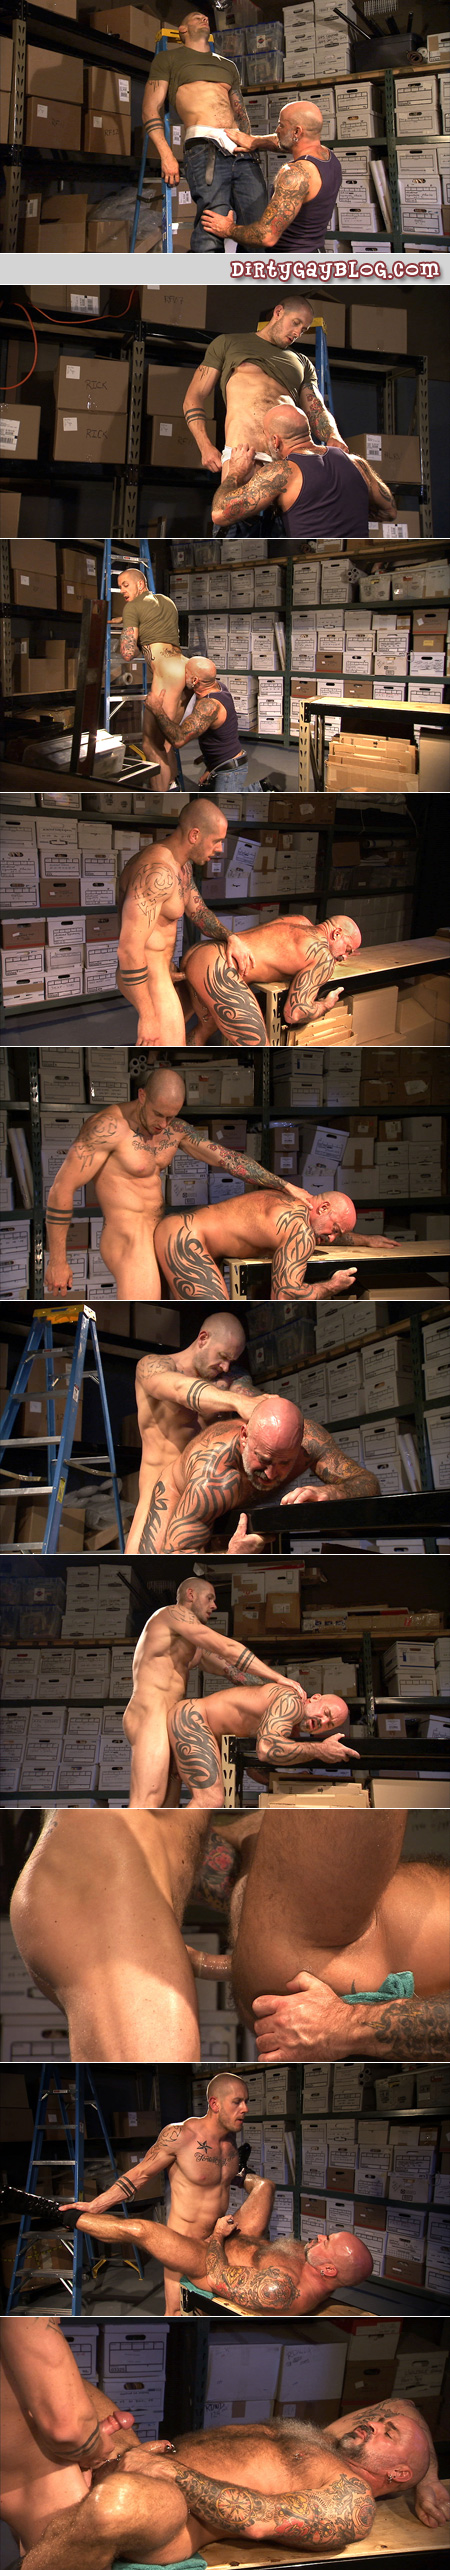 Hairy Daddy bear with a pierced cock and covered in tattoos takes it up the ass from a bald, tatttooed muscle man.